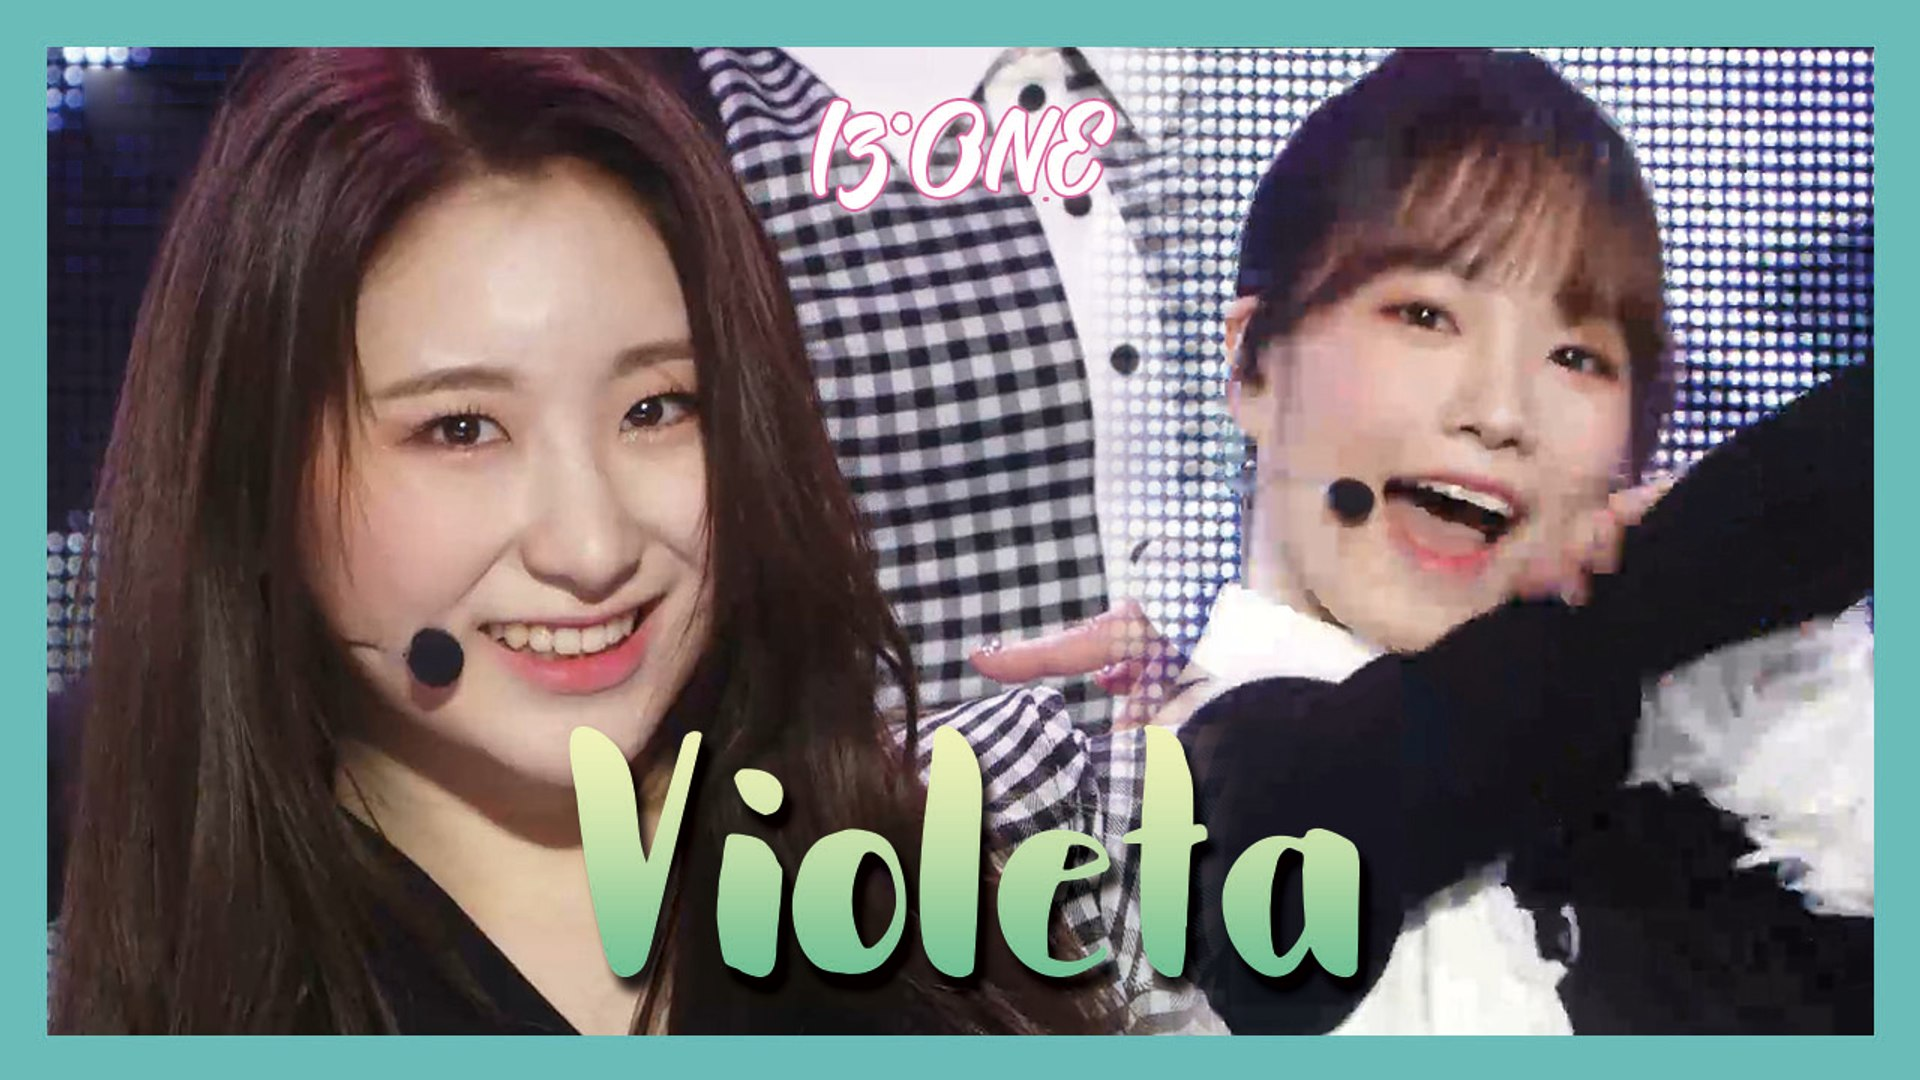 [HOT] IZ*ONE  - Violeta ,  아이즈원 - 비올레타  Show Music core 20190420